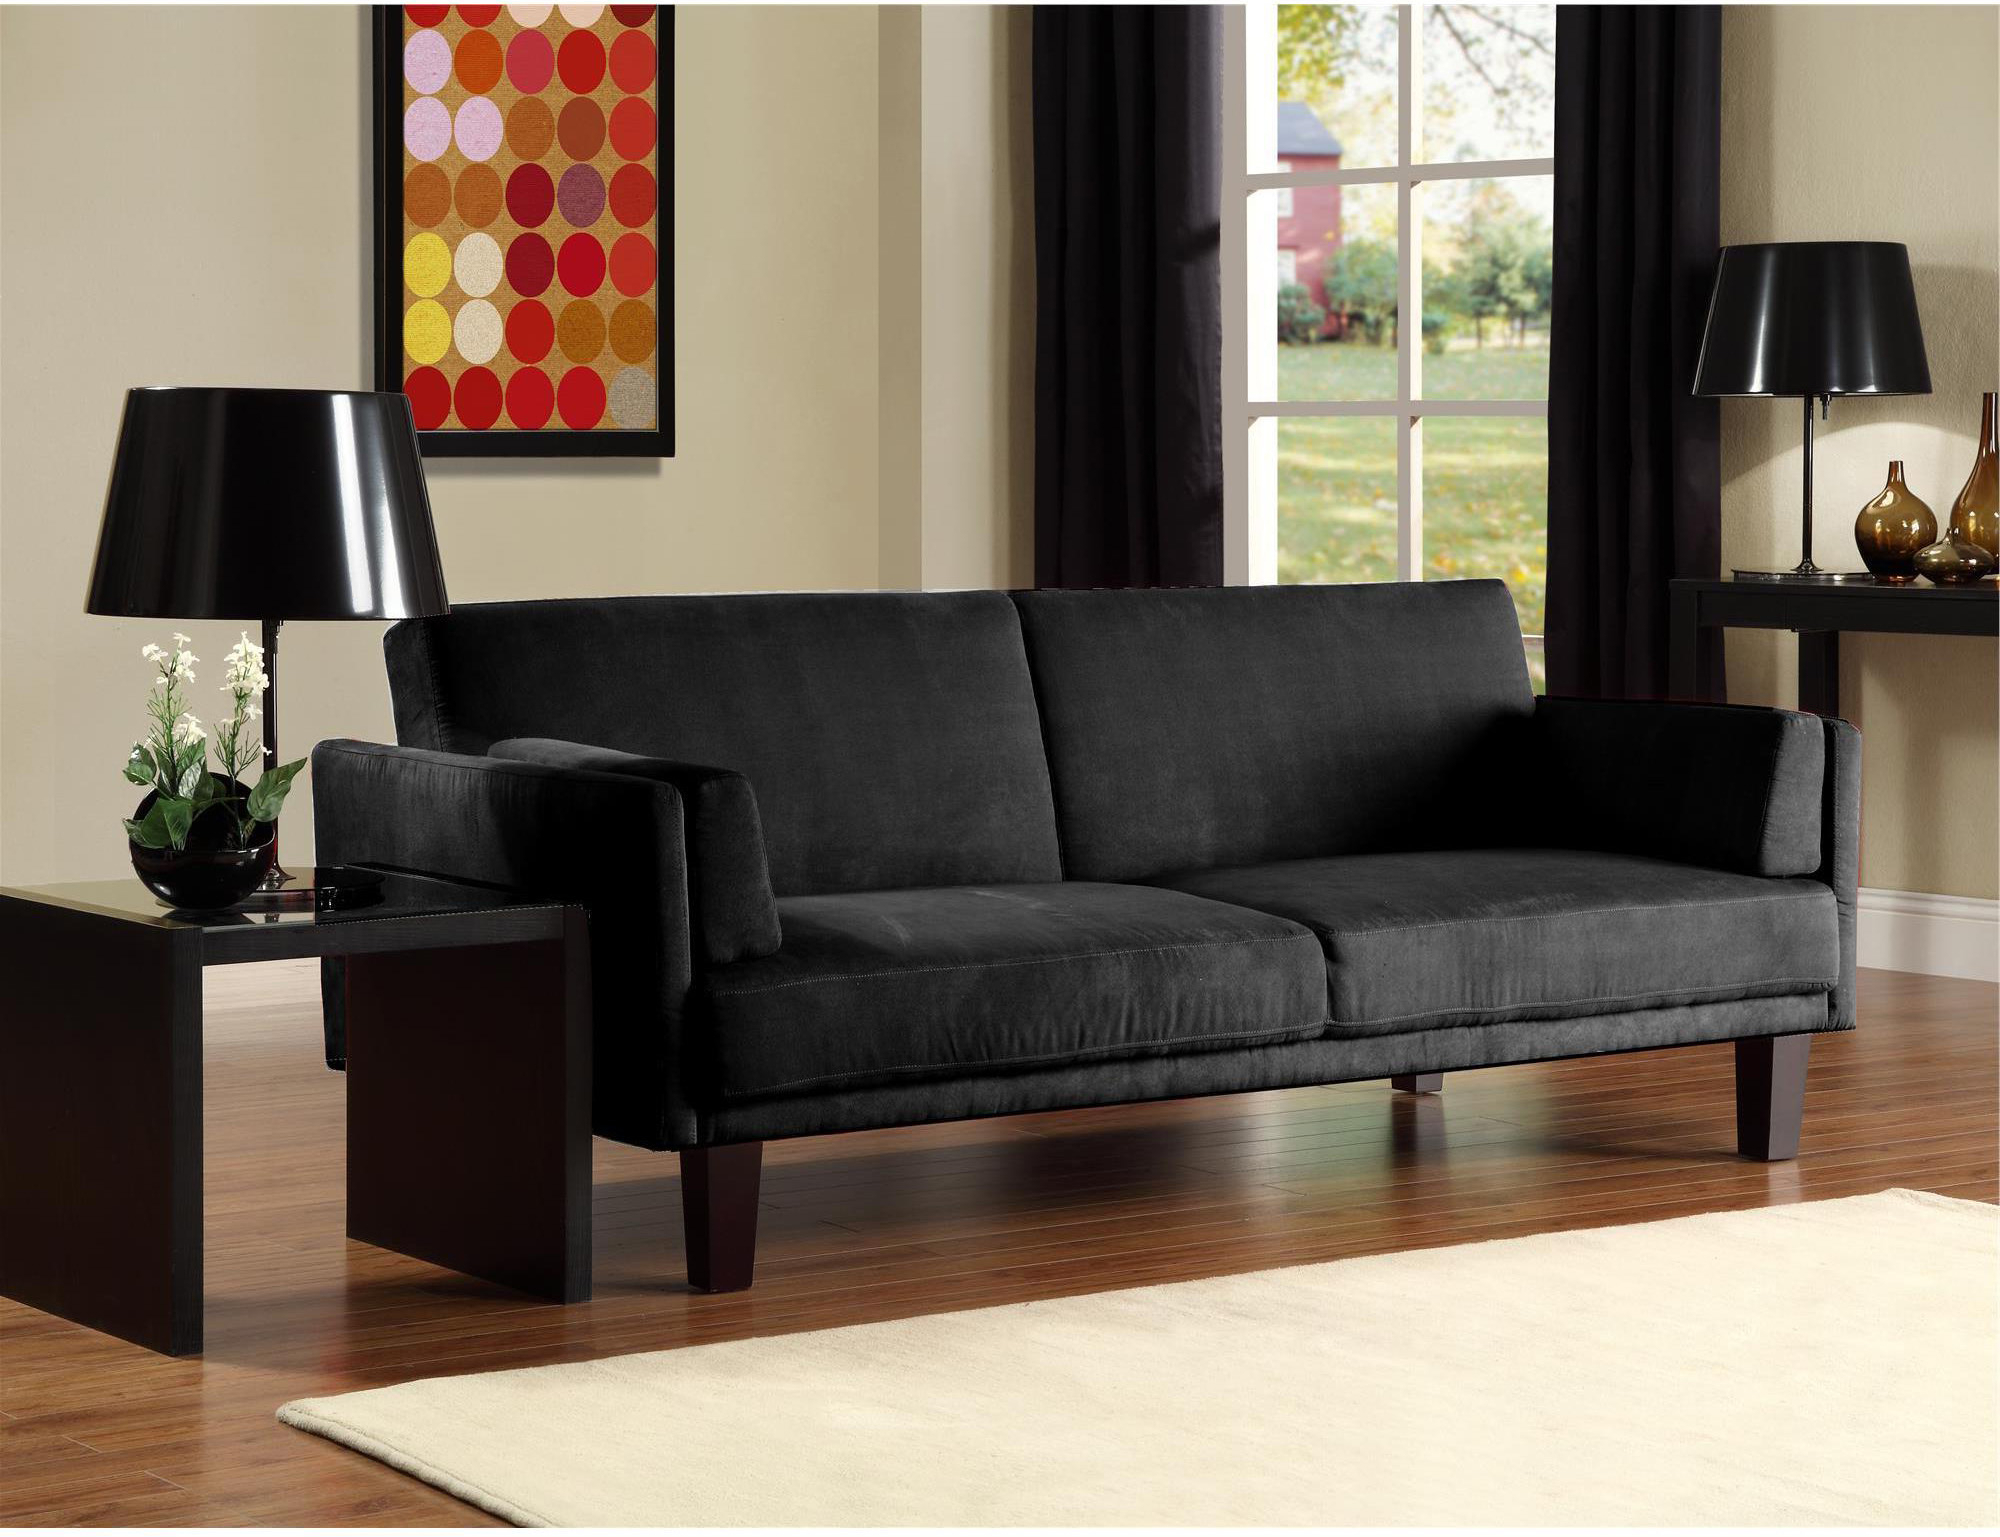 Most Recent 12 Affordable (And Chic) Small Sleeper Sofas For Tight Spaces Intended For Easton Small Space Sectional Futon Sofas (View 15 of 25)